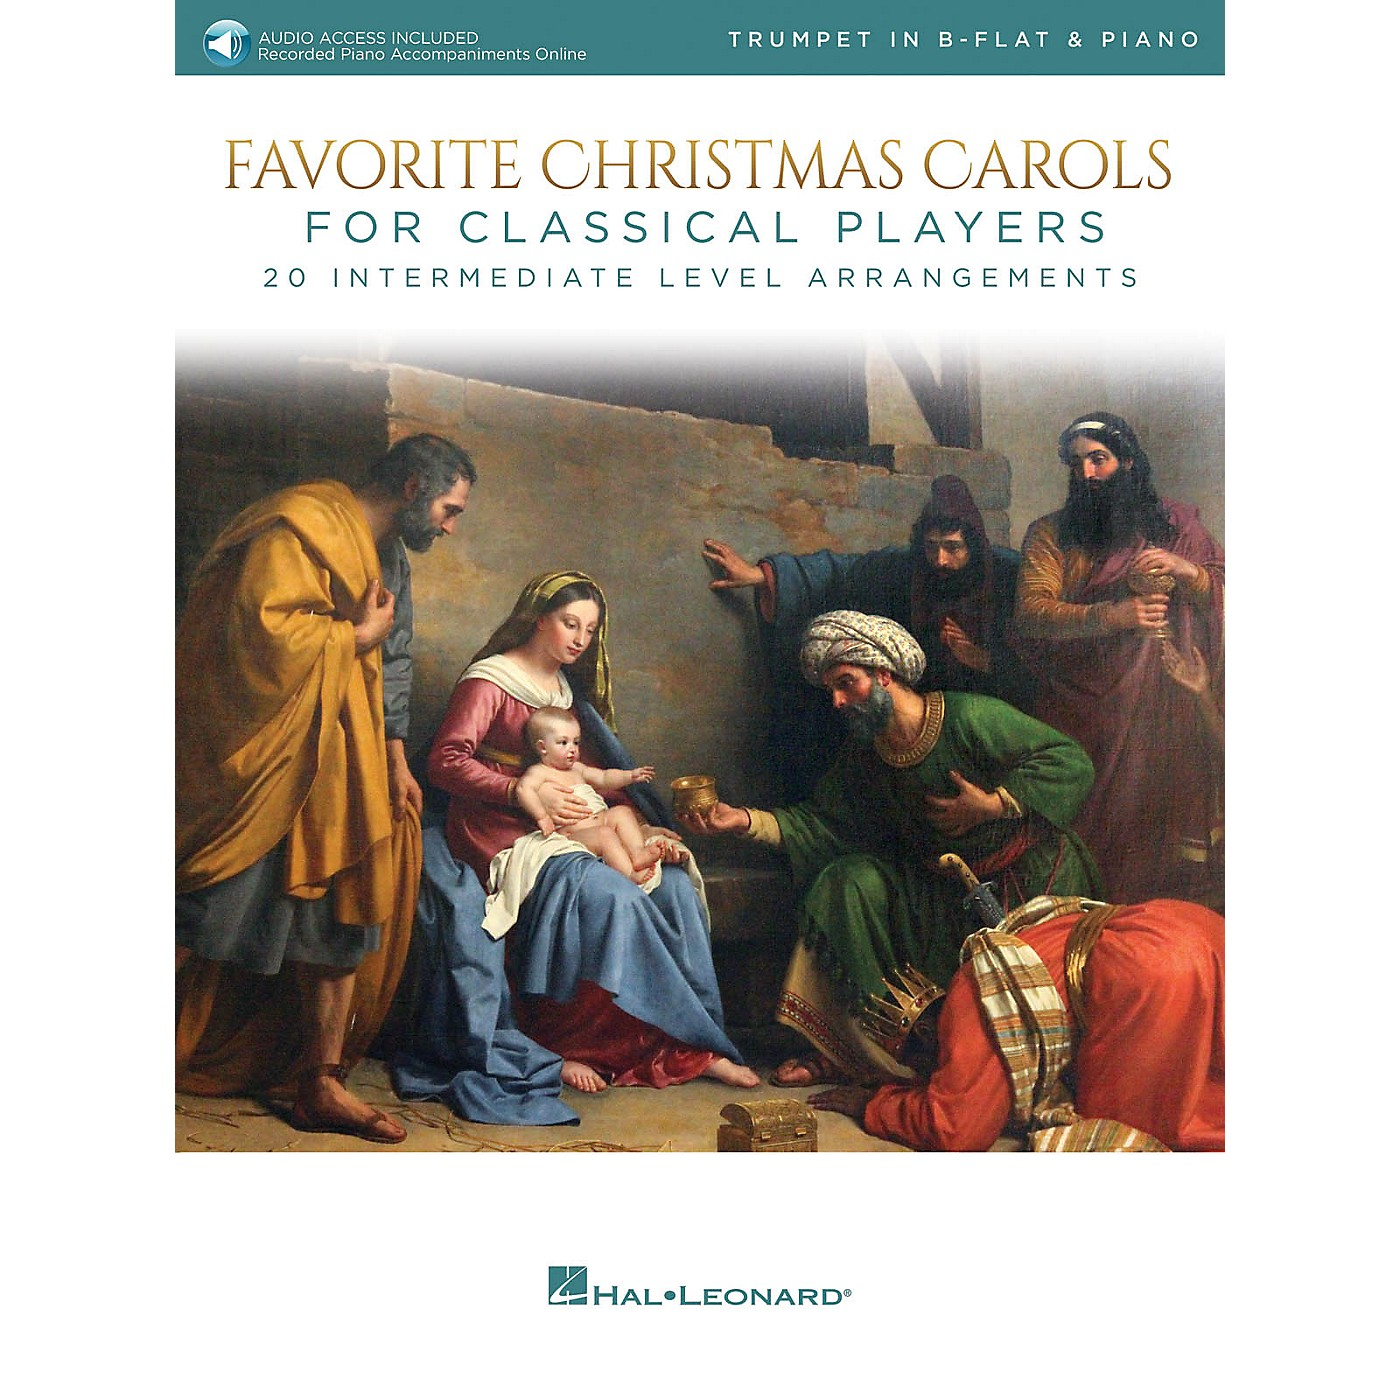 Hal Leonard Favorite Christmas Carols for Classical Players - Trumpet and Piano Book/Audio Online thumbnail